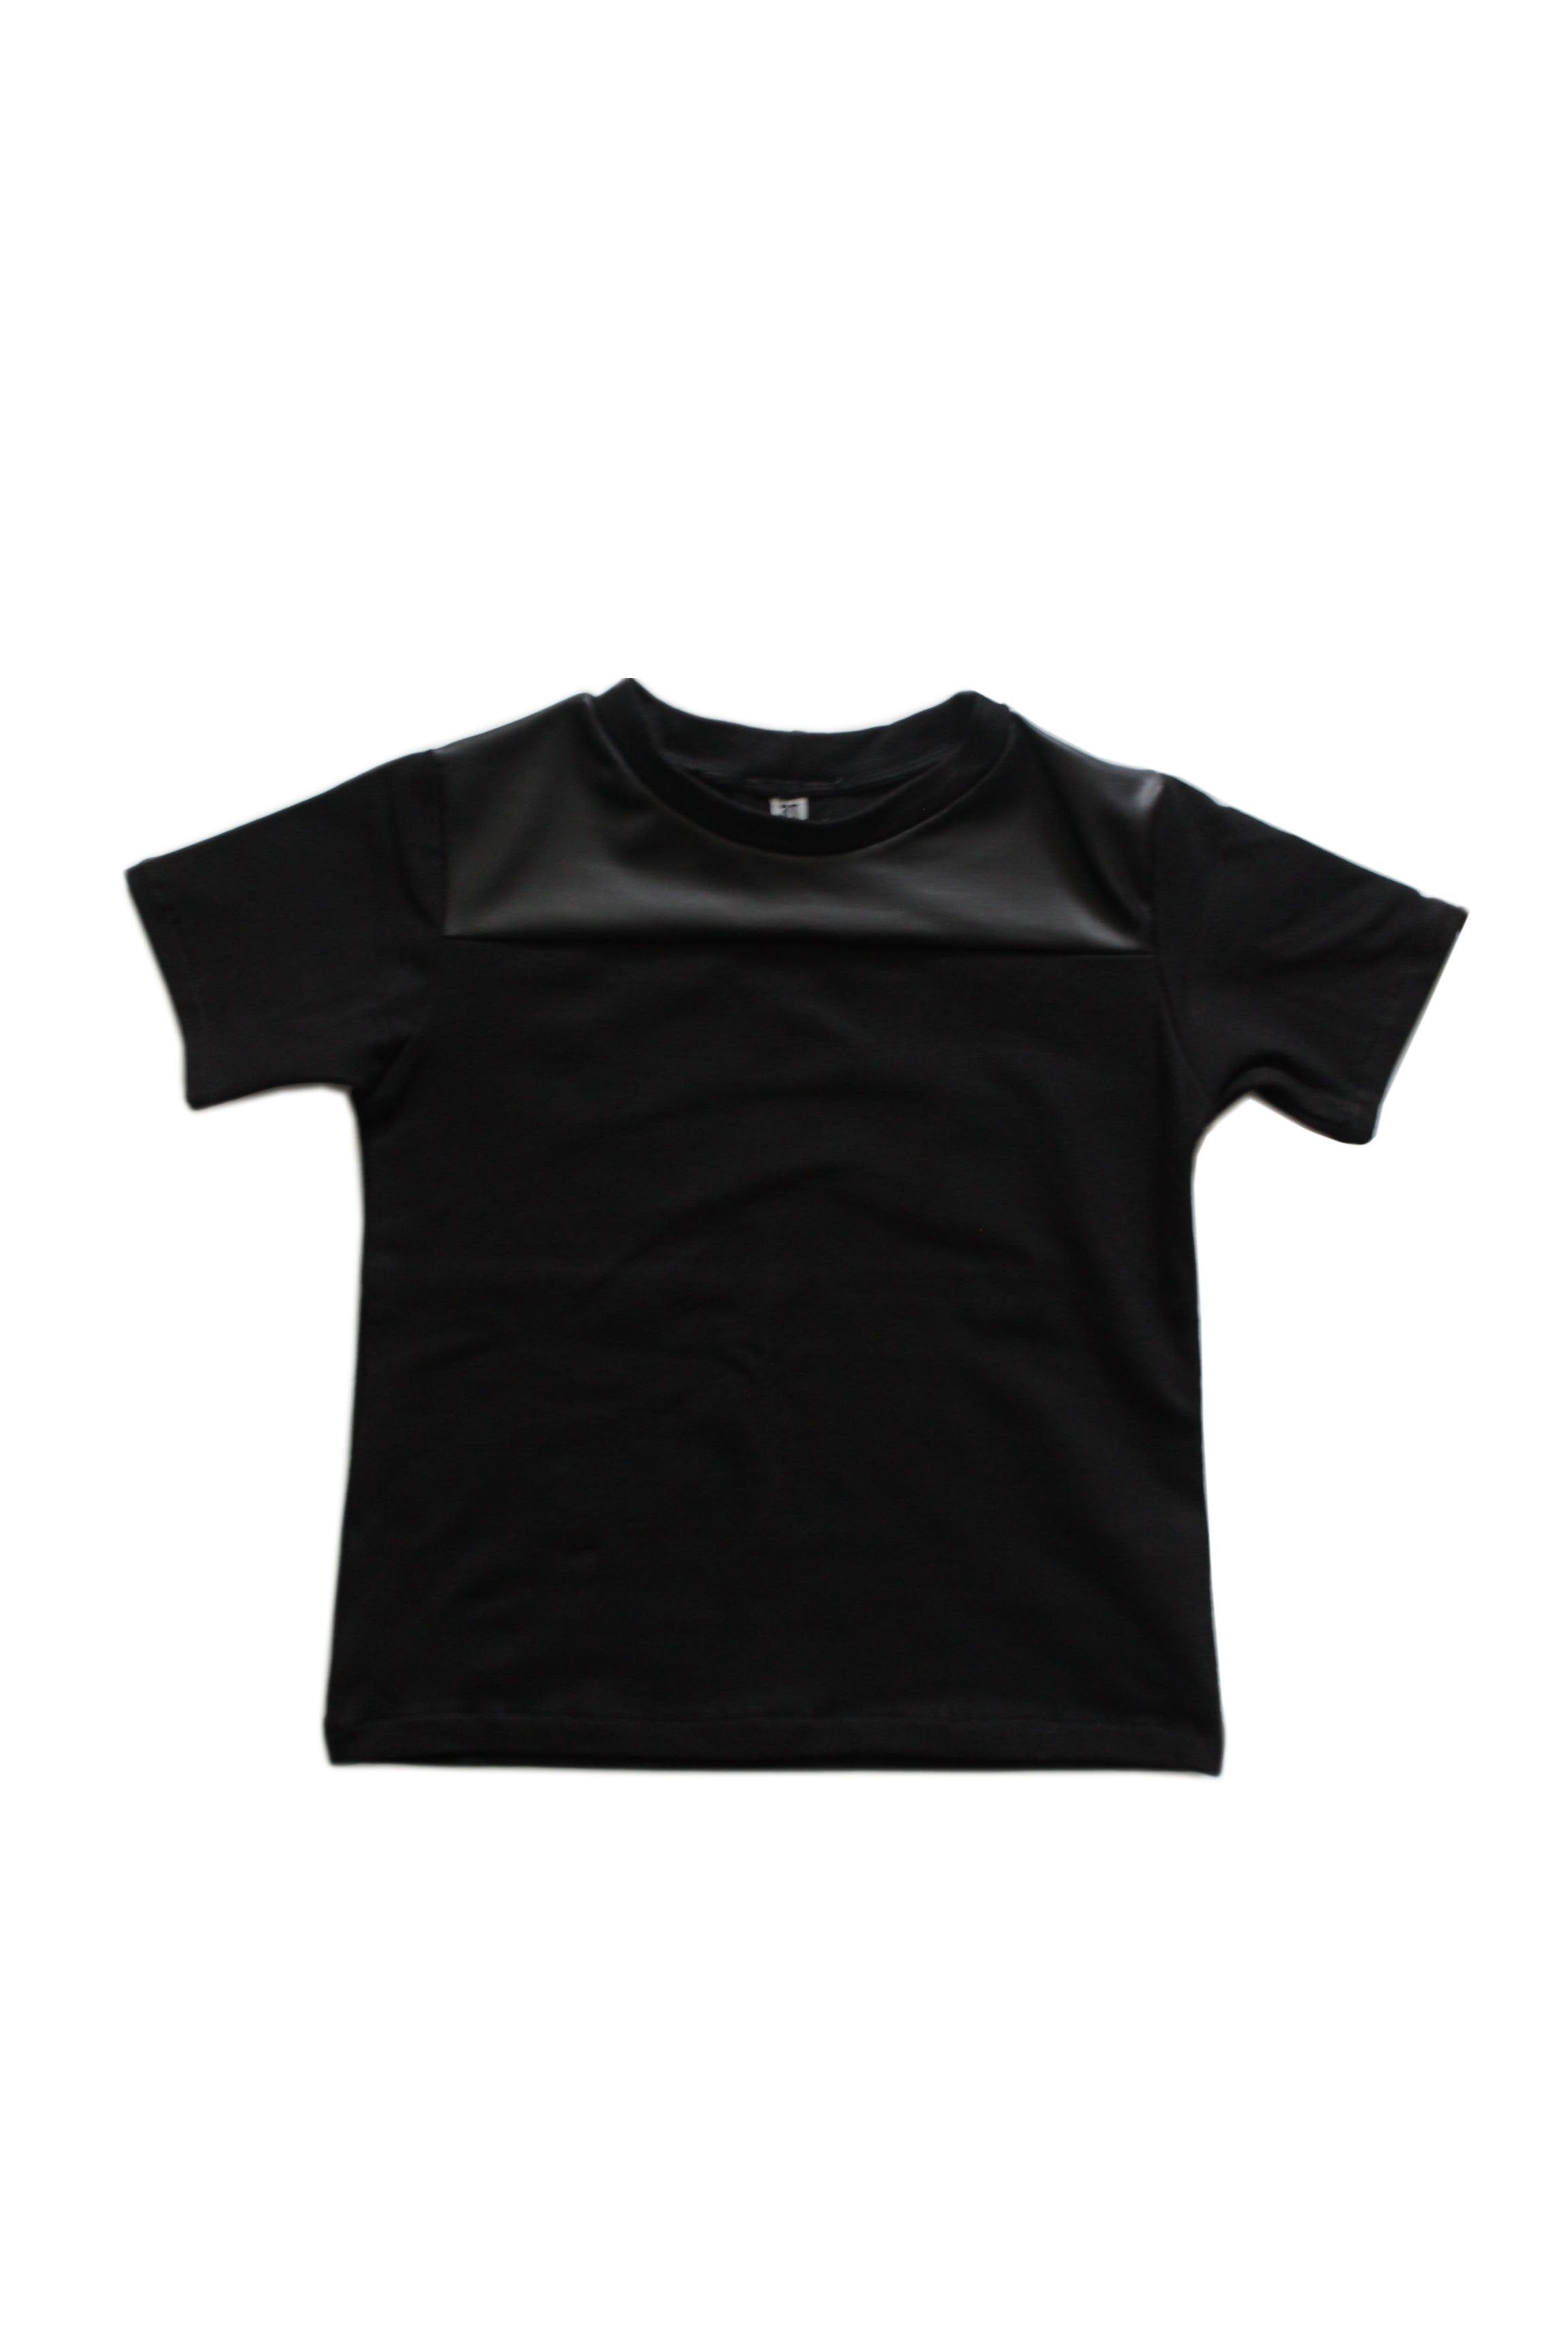 Faux Leather Contrast Tee - Black